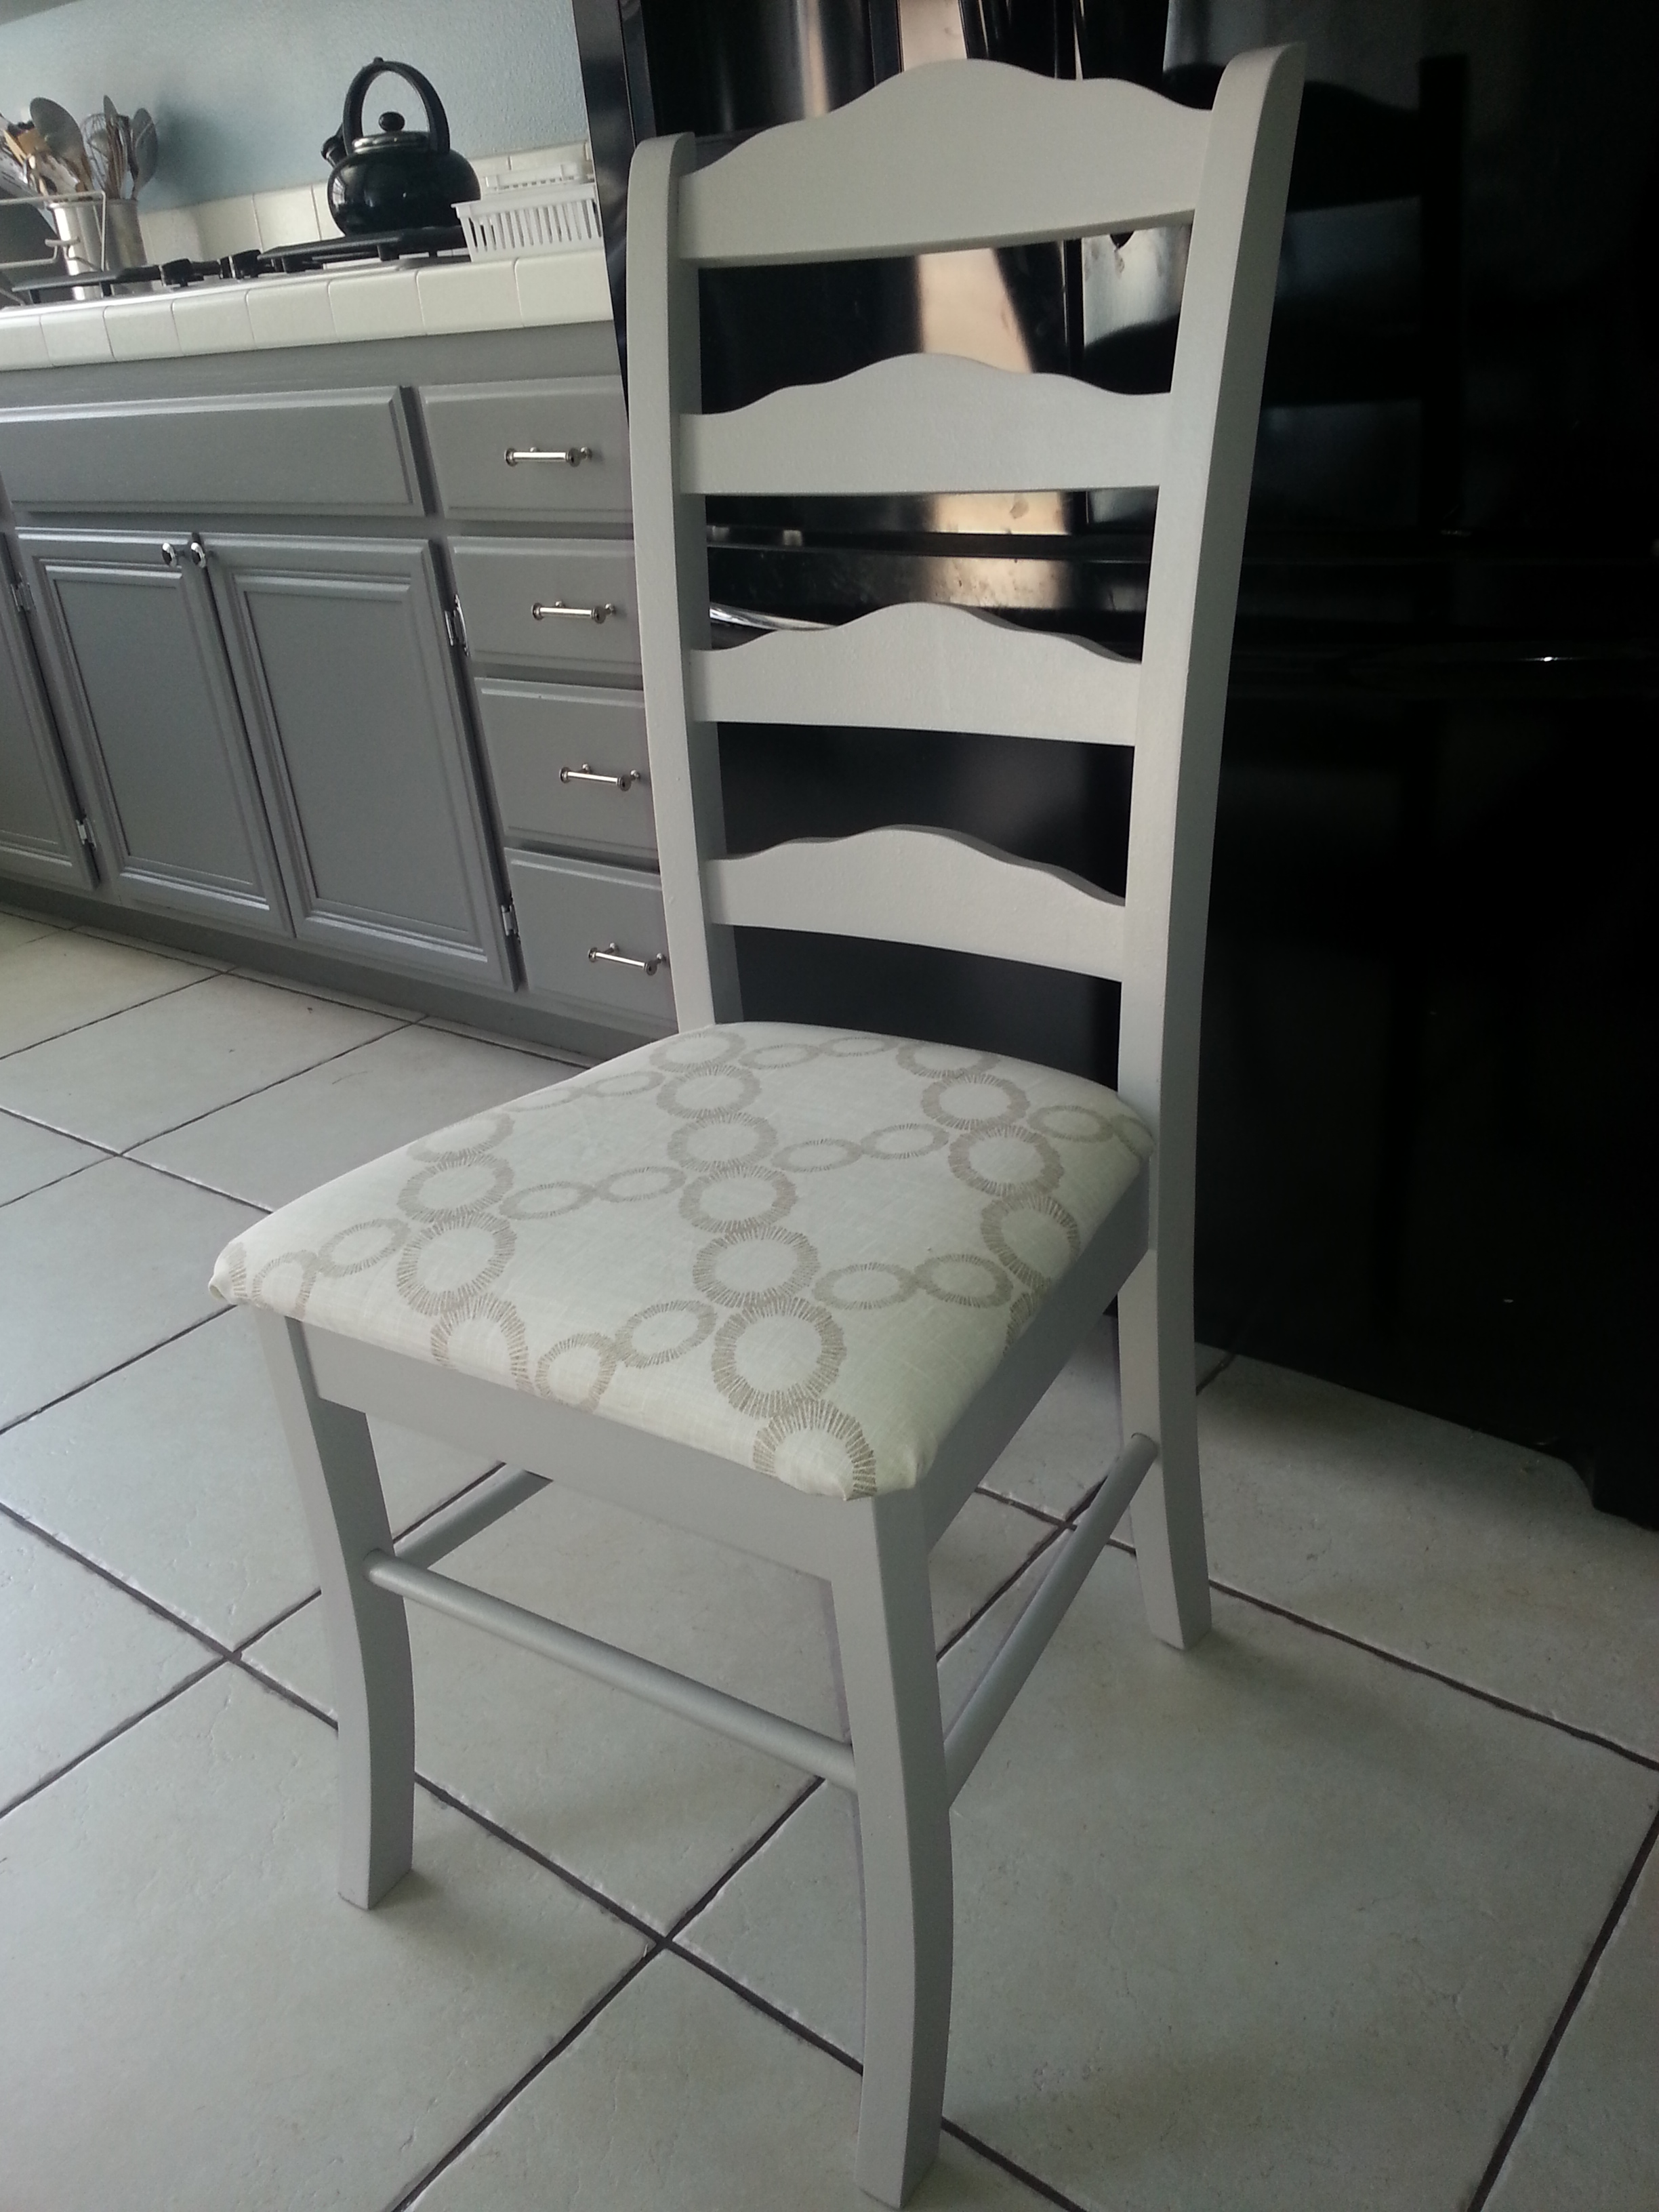 My Recycled, Refinished and Reupholstered Chair